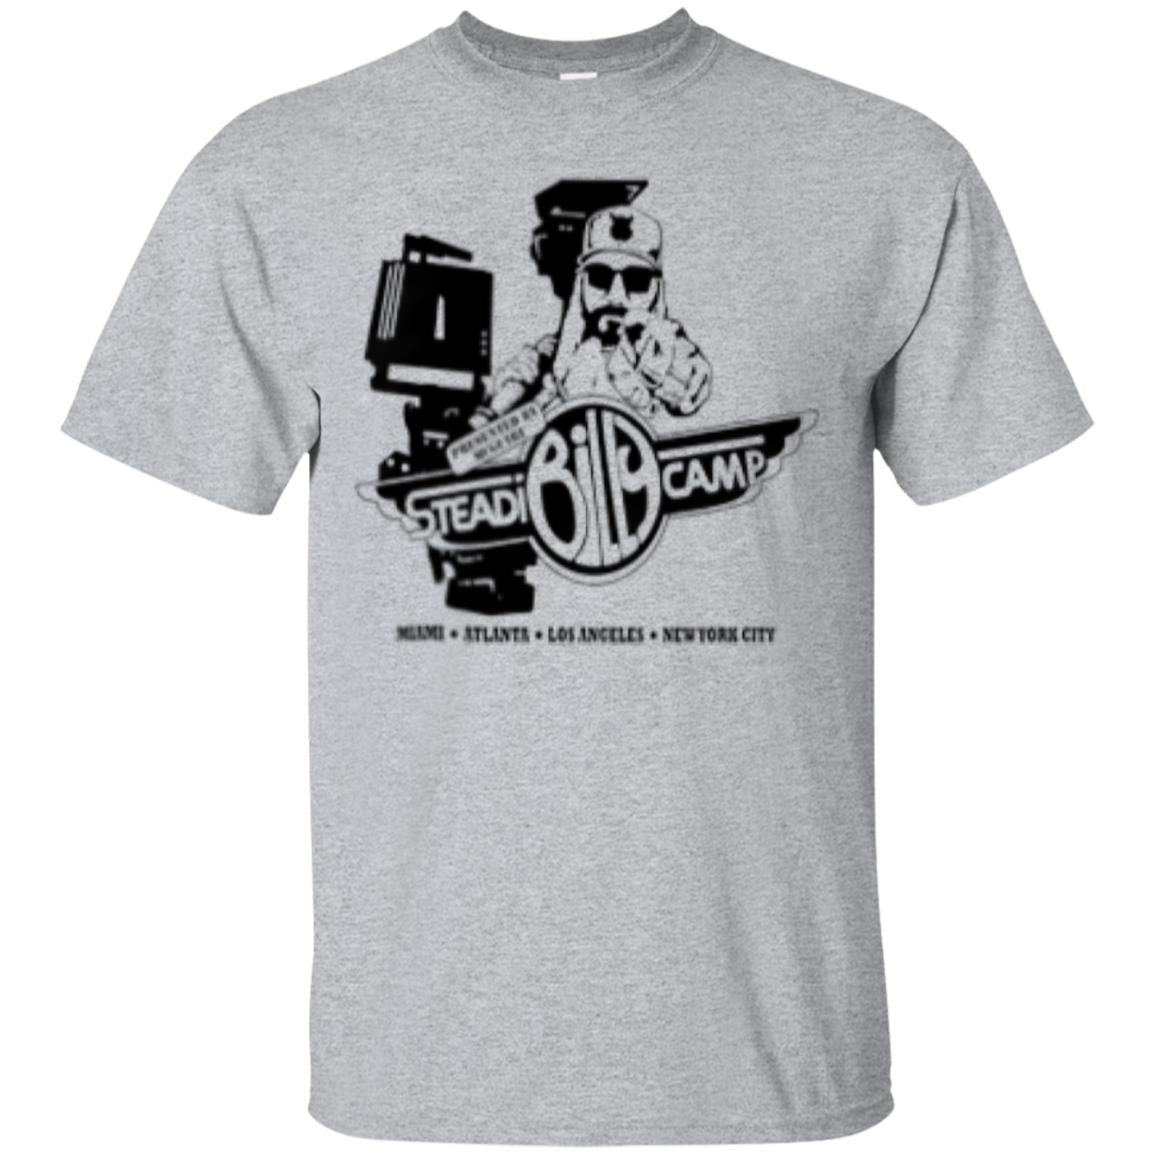 SteadiBillyCamp T-Shirt 99promocode